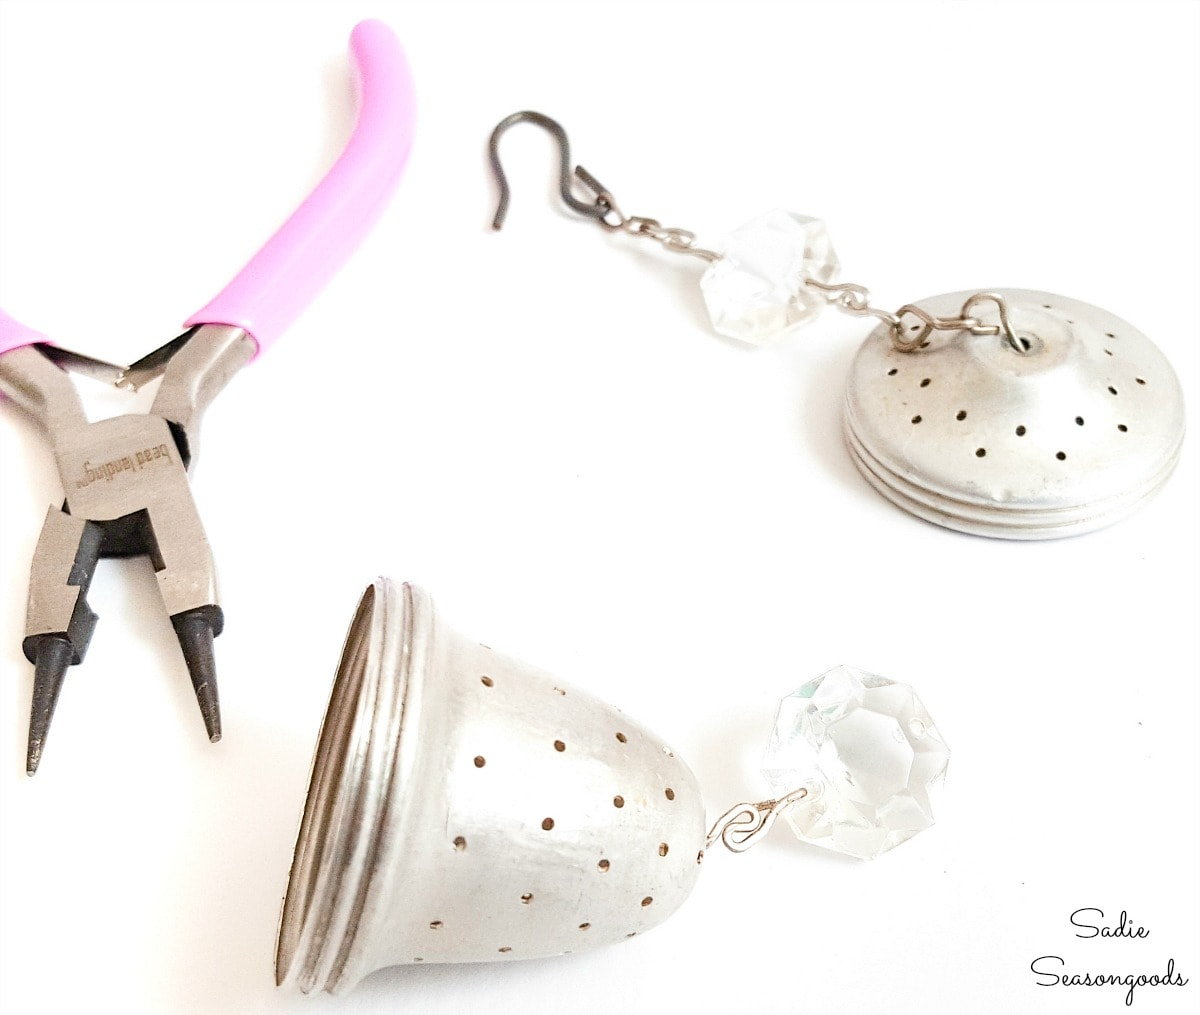 Craft ideas for vintage tea strainers